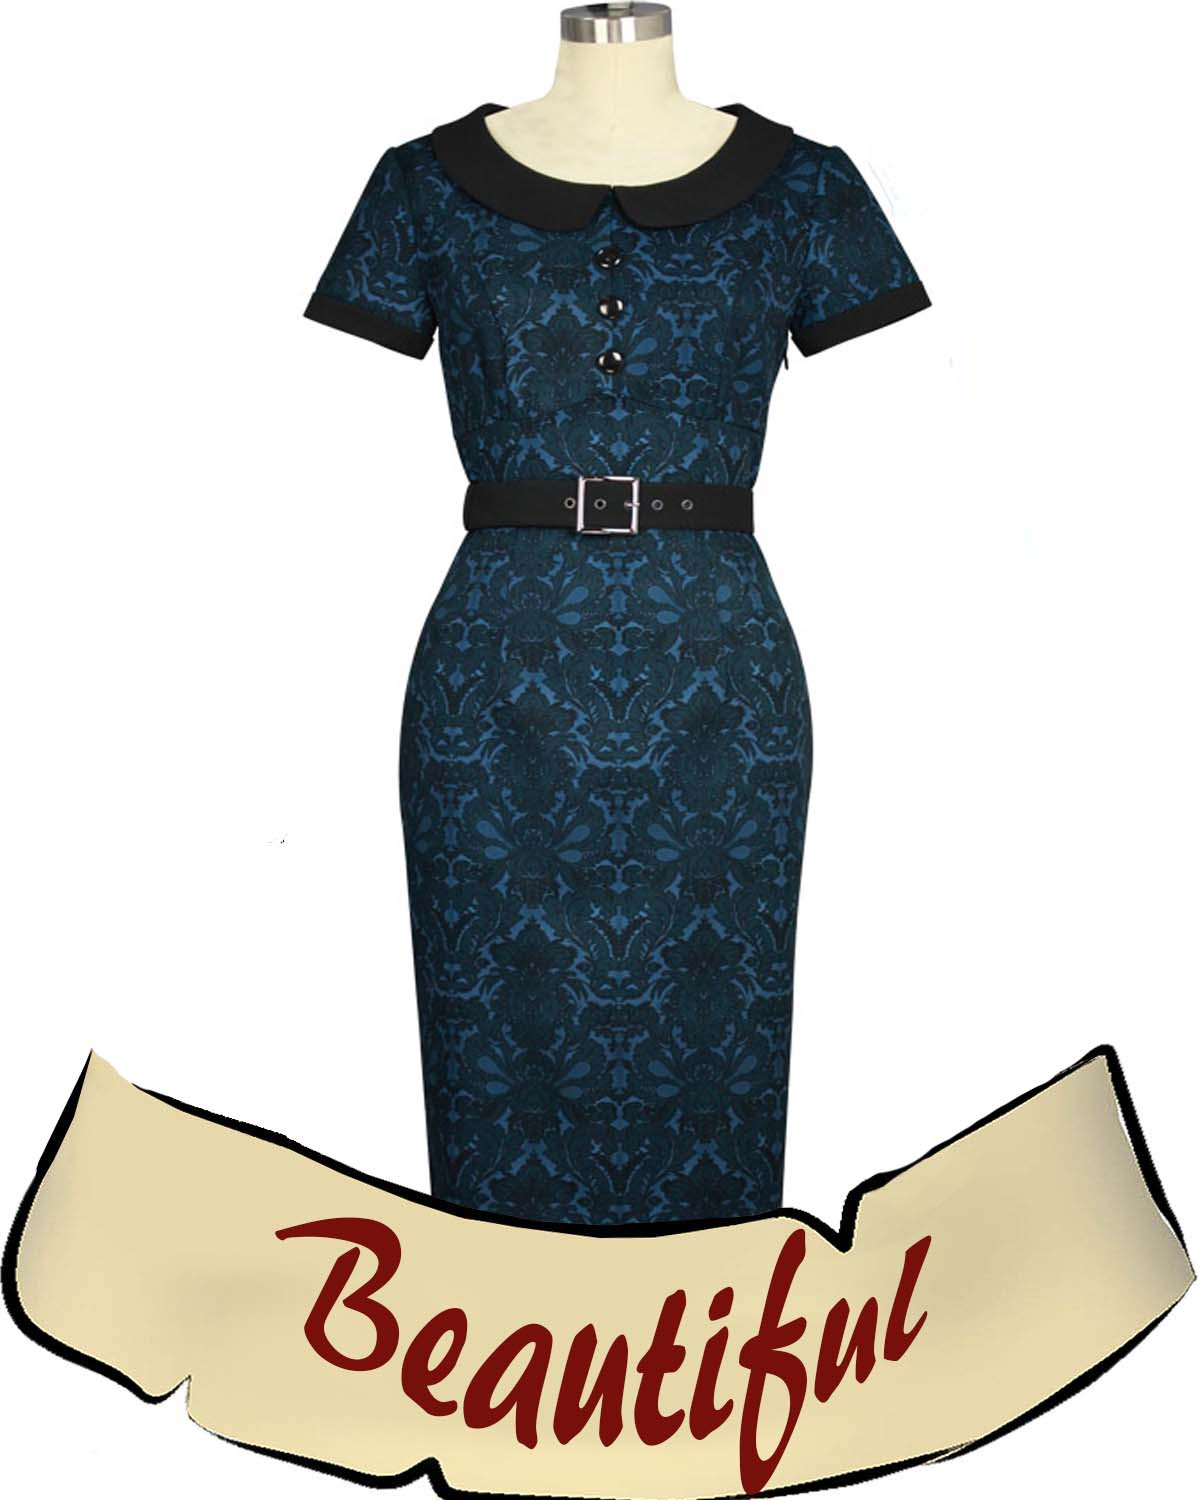 Gorgeous Steel Blue and Black Pinup Dress - True Plus Size Available